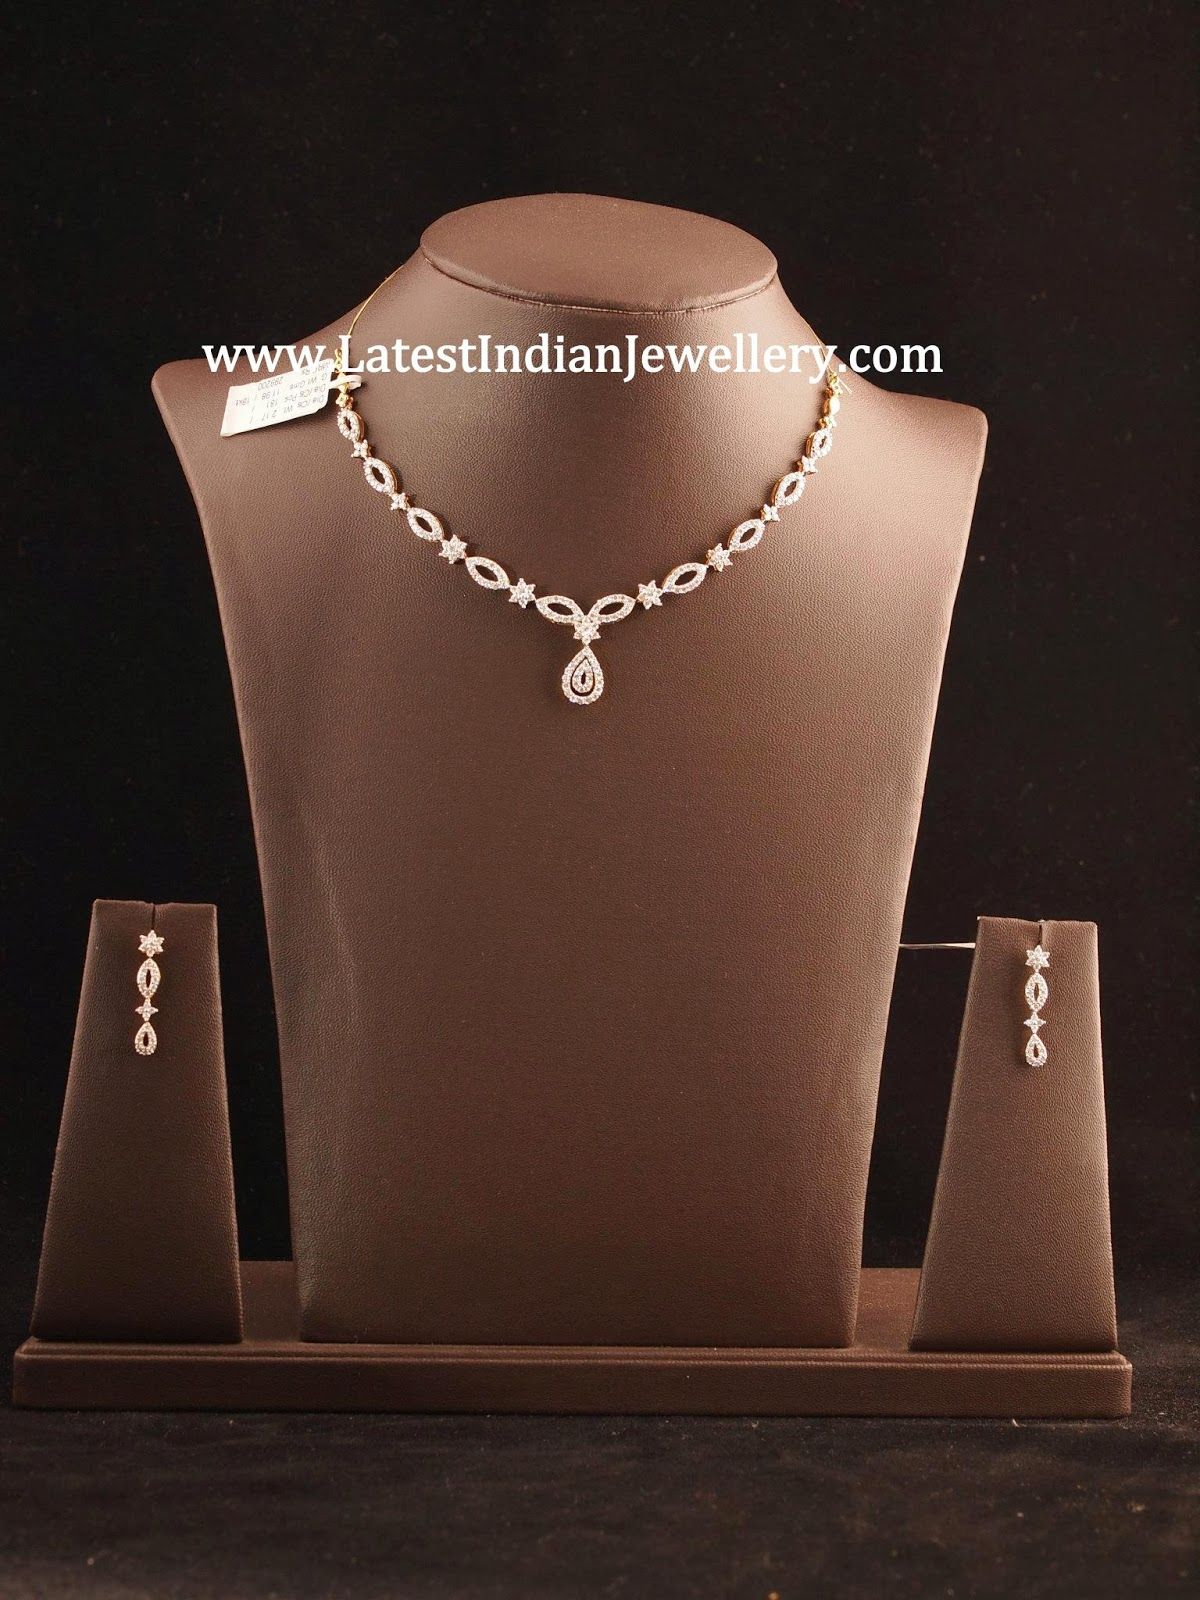 Stylish Simple Diamond Necklace Sets India Jewelry